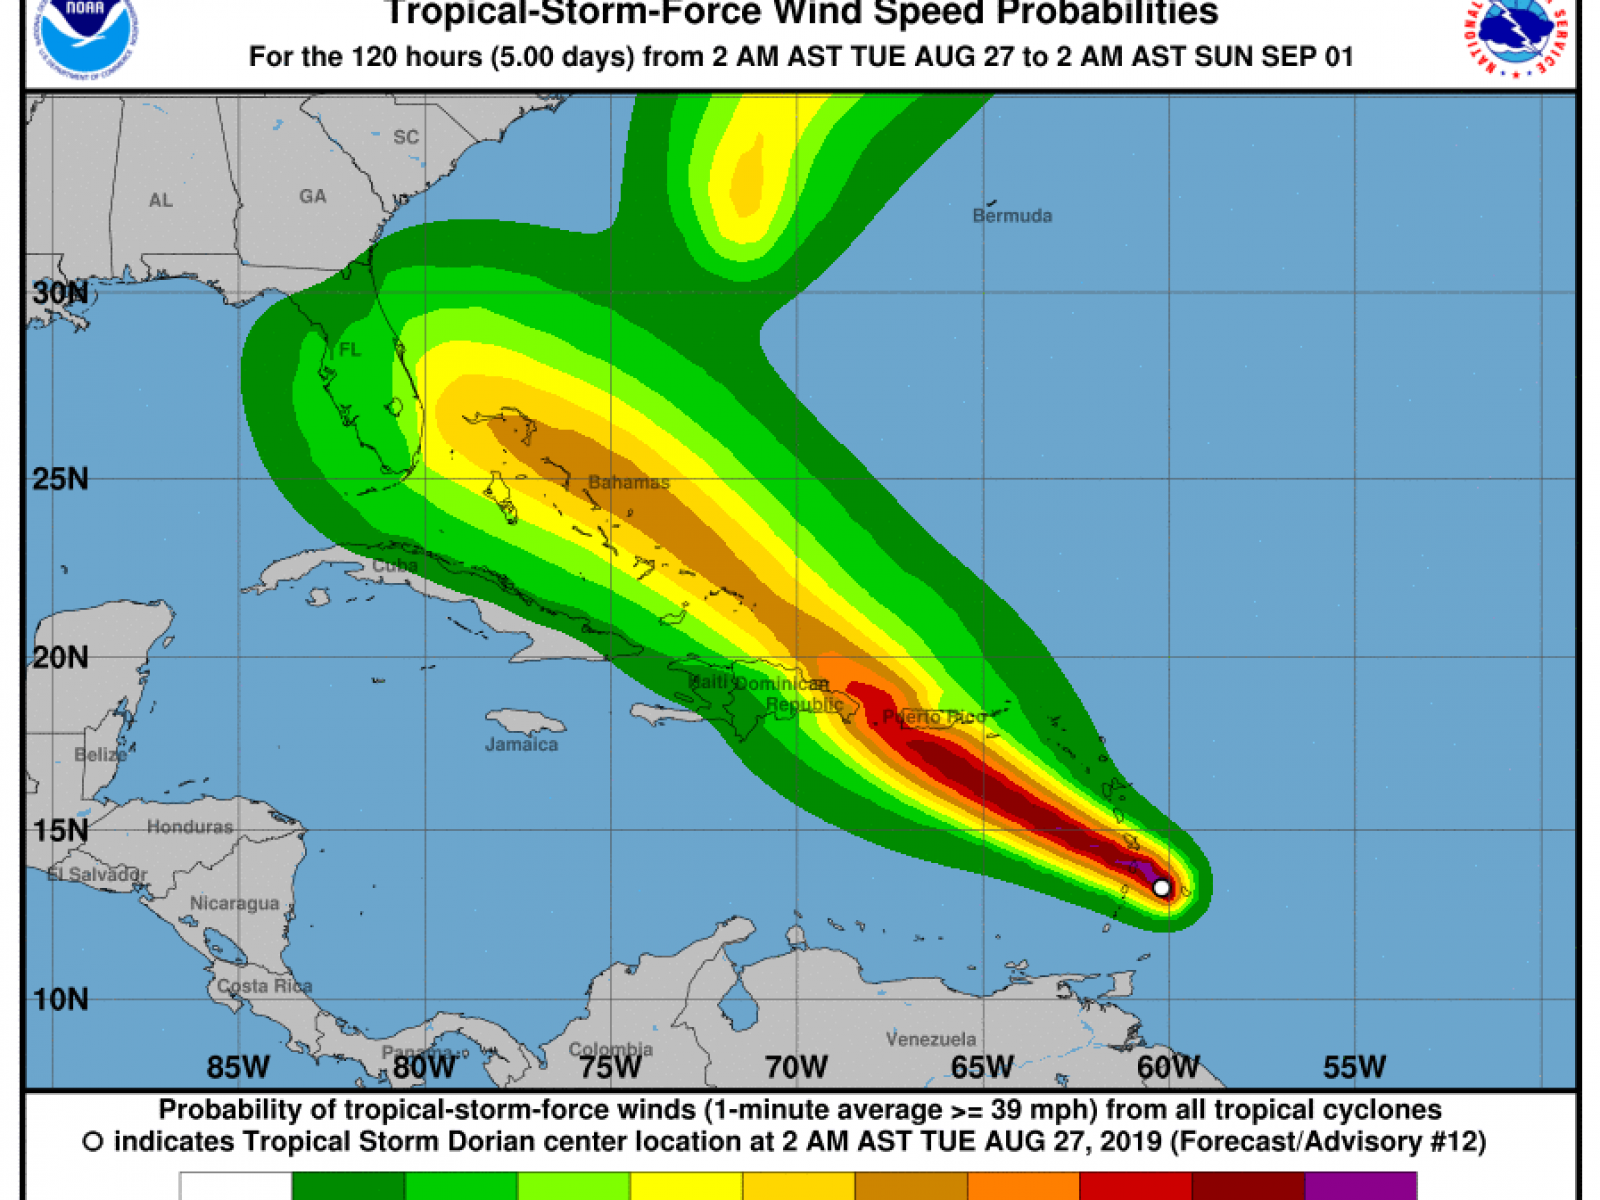 Will Tropical Storm Dorian Hit Florida? Intensity Uncertain ... on map of guiana, map of bahamas, map of south america, map of world, map of colombia, map of nicaragua, map of honduras, map of ecuador, map of canada, map of aruba, map of switzerland, map of puerto rico, map of romania, map of paraguay, map of yemen, map of caracas, map of bolivia, map of greece, map of bonaire,